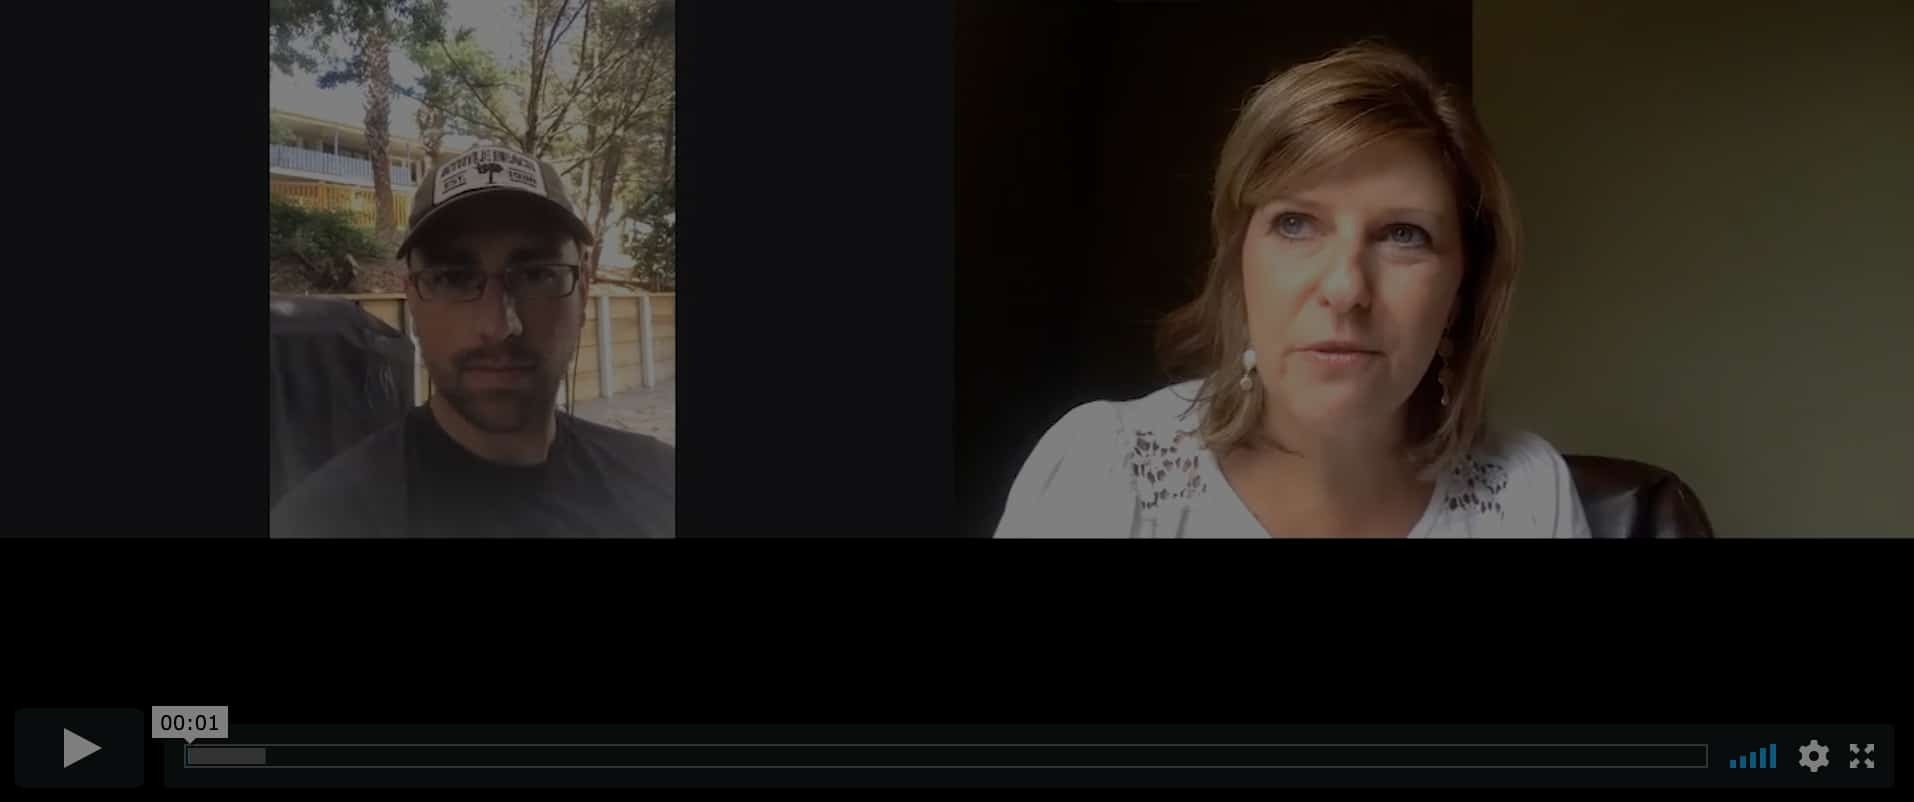 Watch the Video: How Jason Reaches More People With The Support of a Virtual Assistant